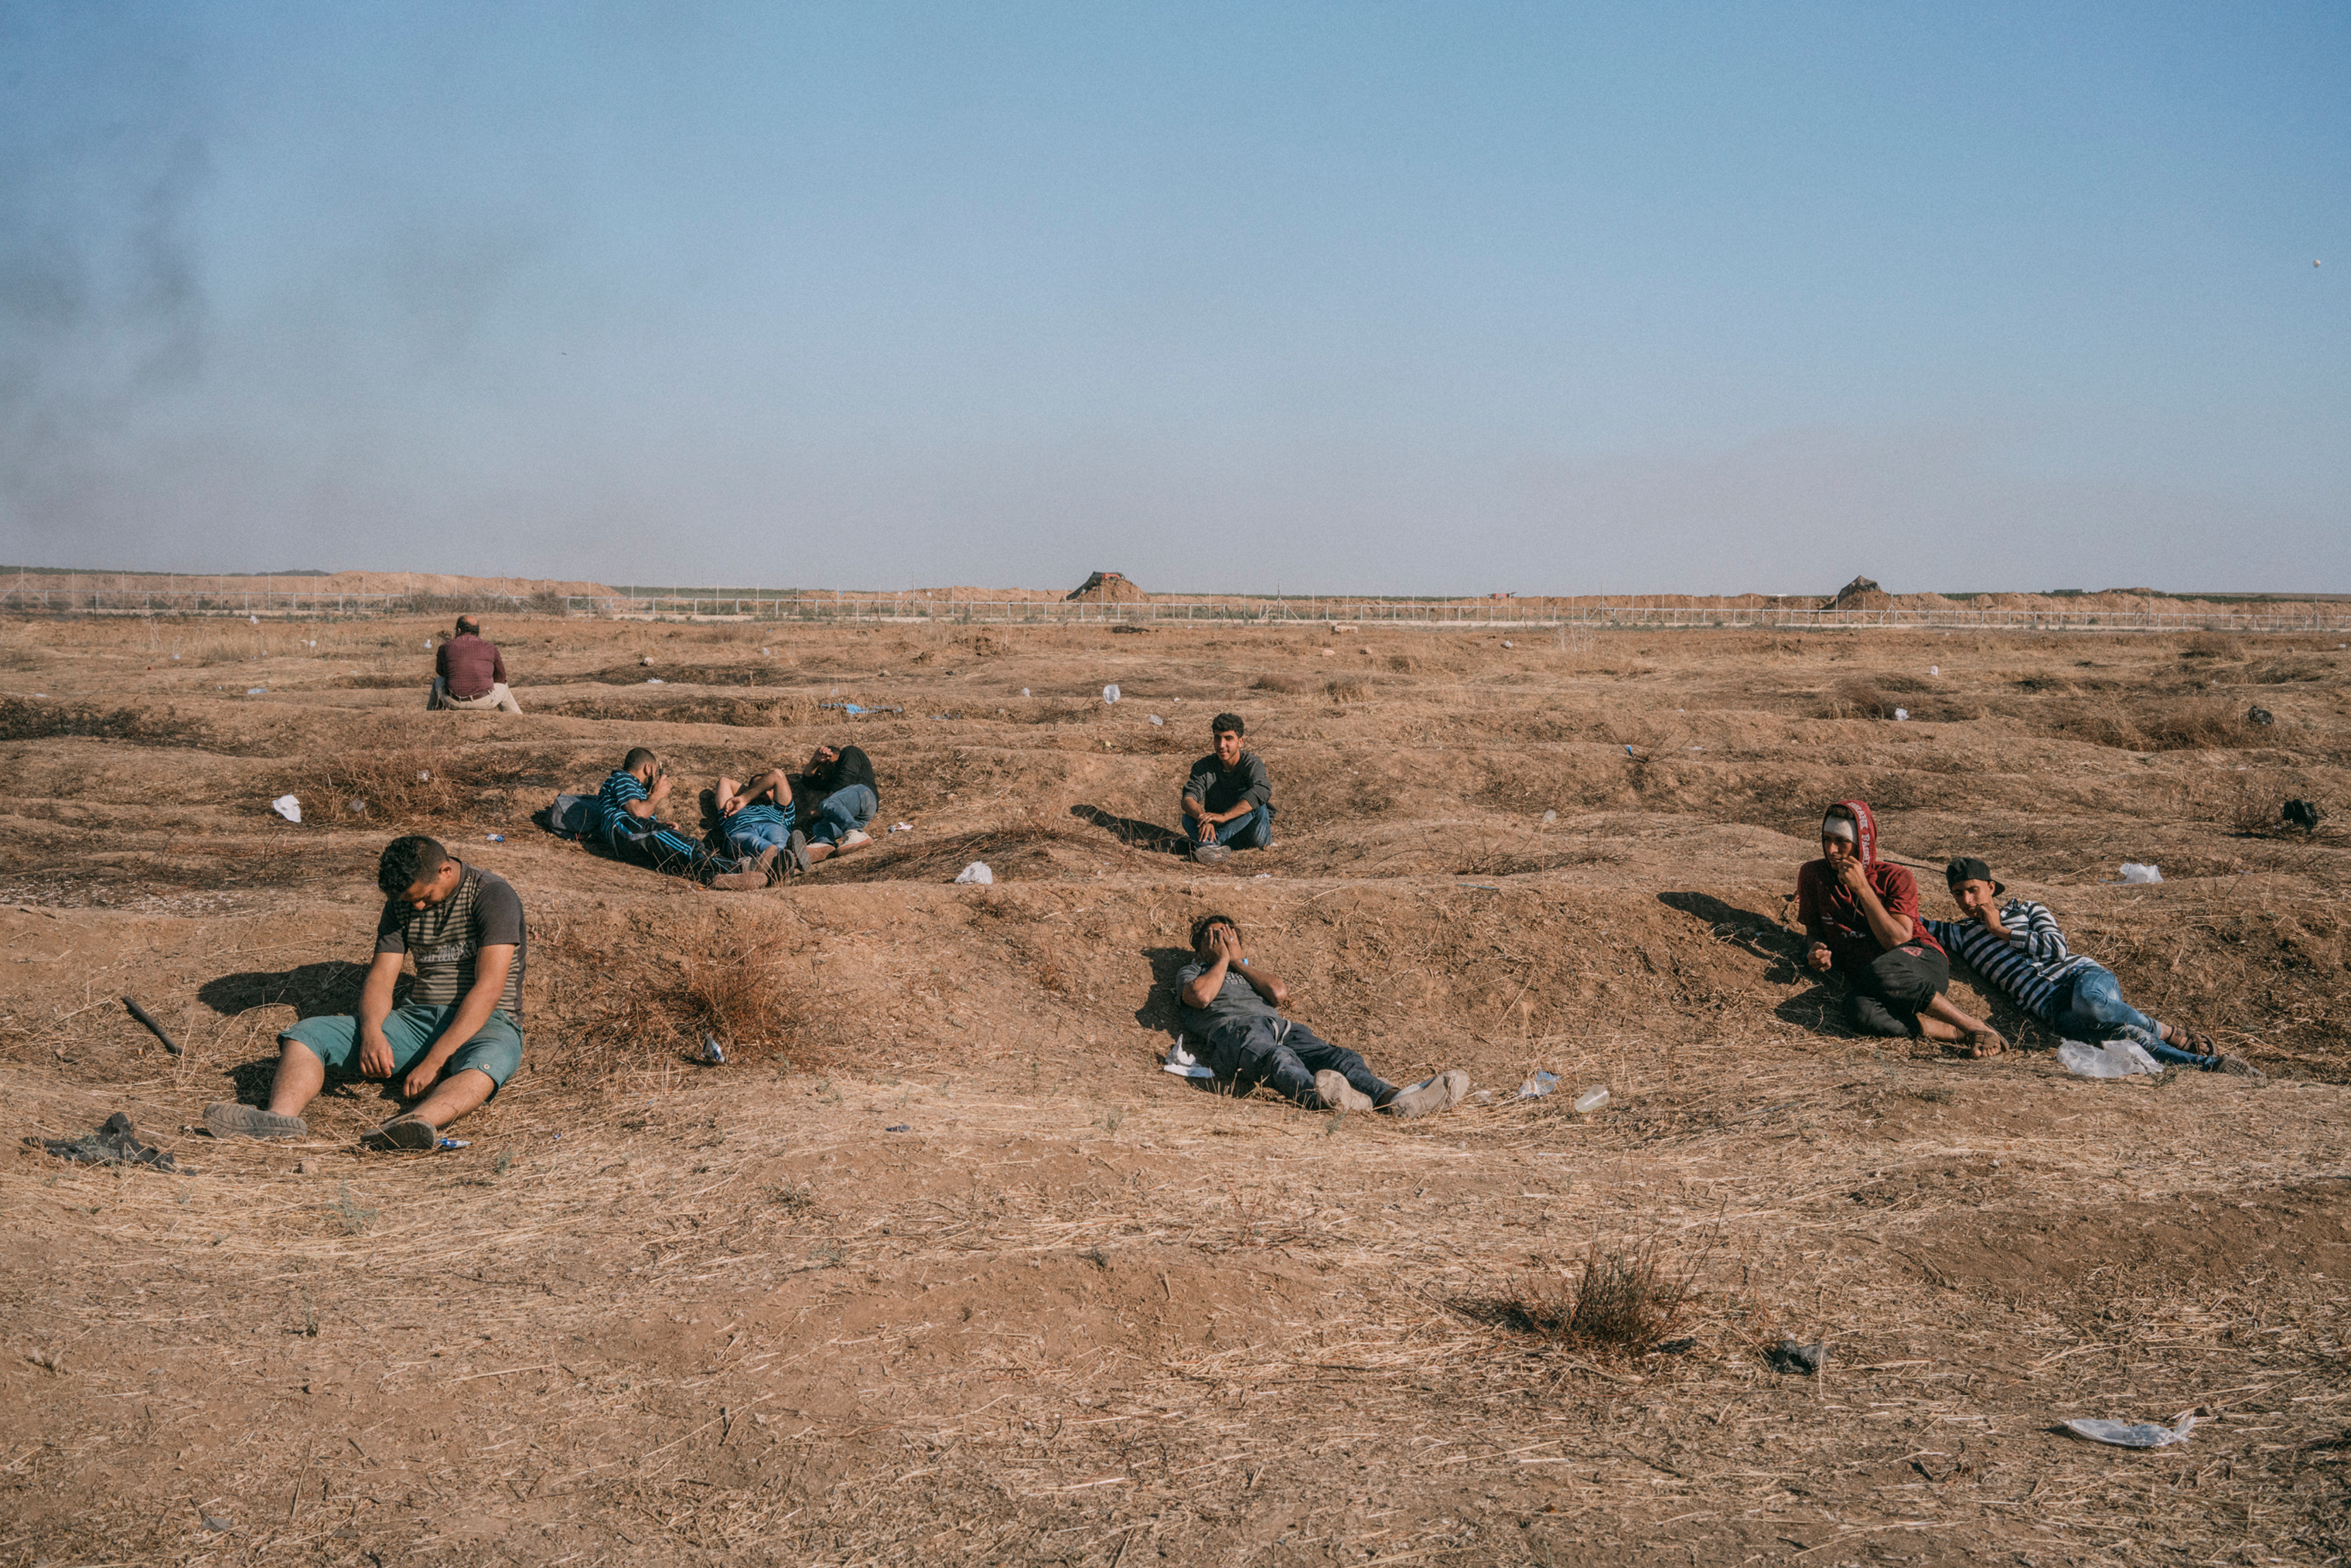 Palestinians sit along the Gaza-Israel border as smoke wafts in the distance.